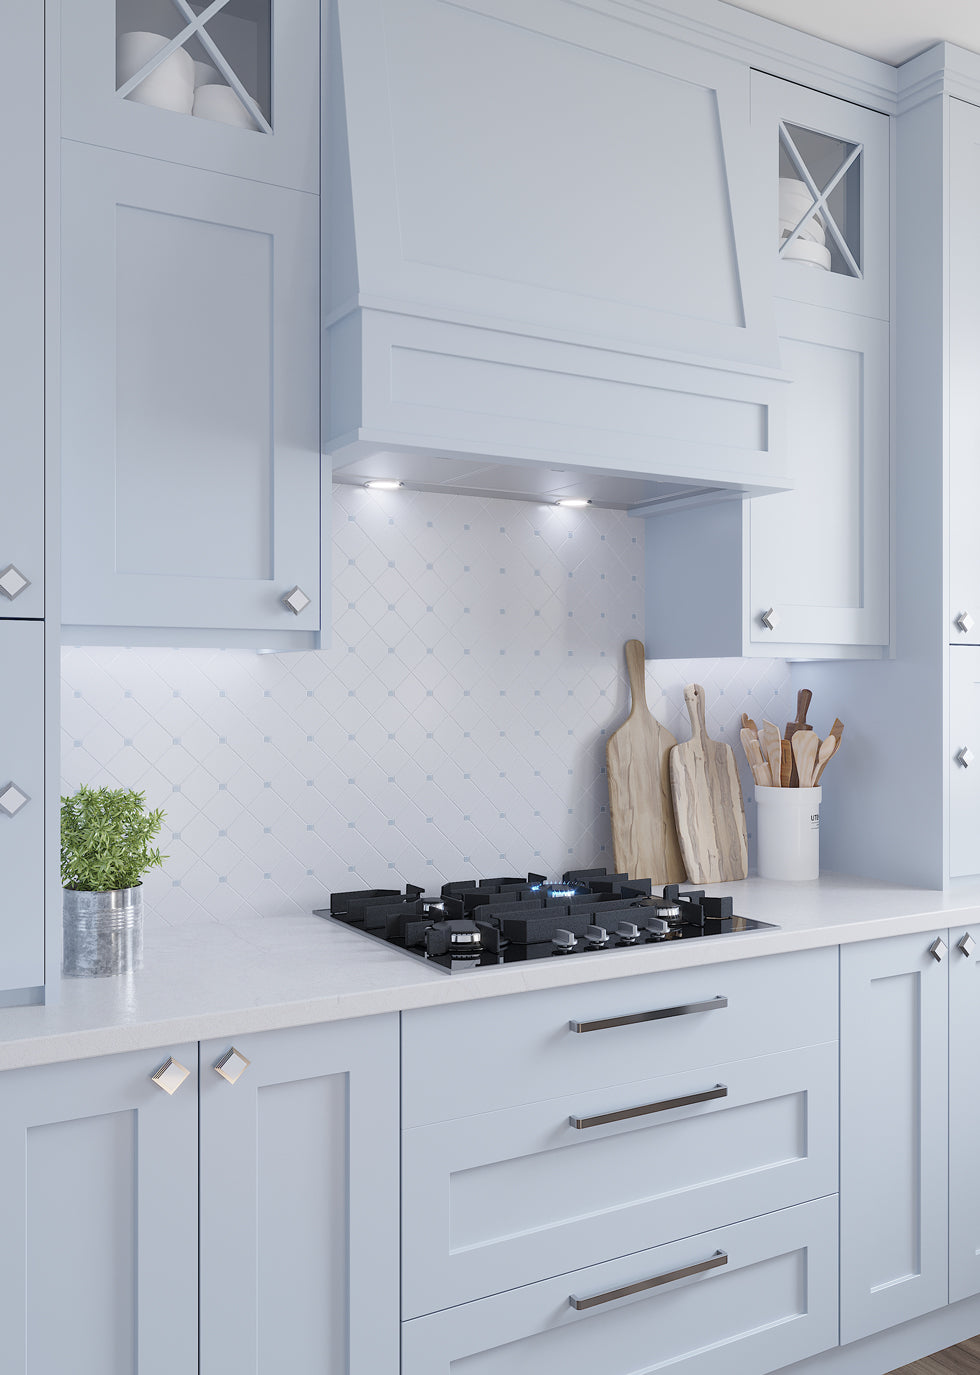 Light and Bright Kitchens are Majorly Trending